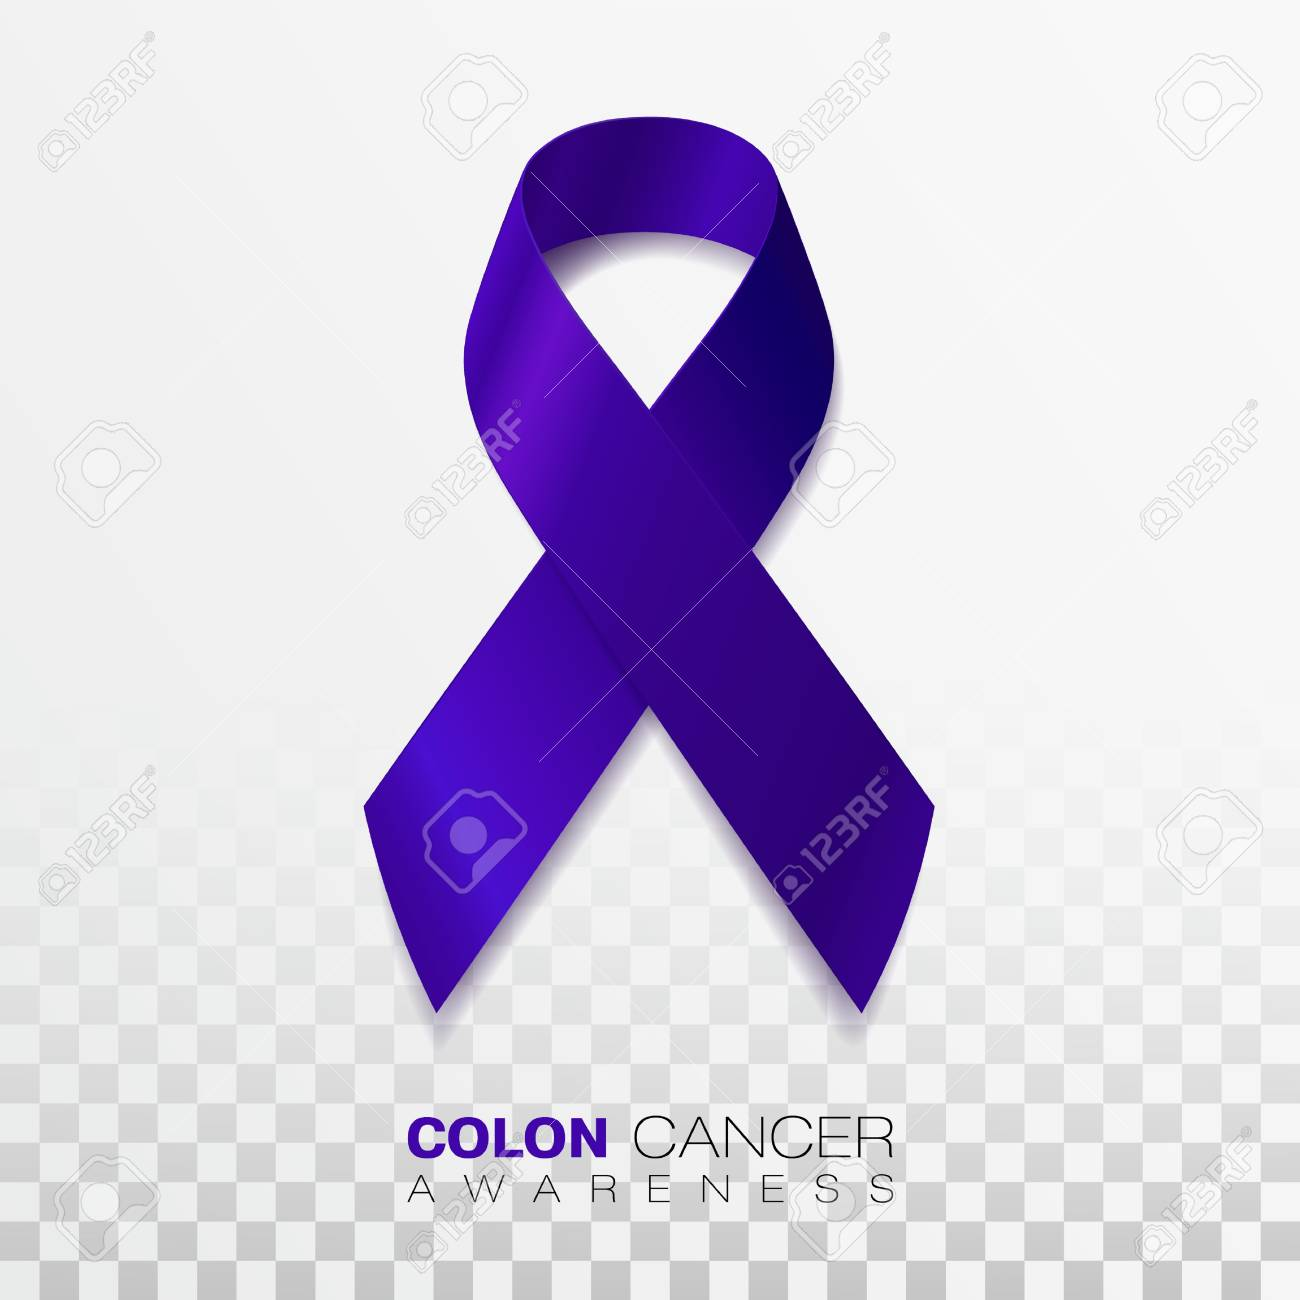 Colon Cancer Awareness Month Dark Blue Color Ribbon Isolated Royalty Free Cliparts Vectors And Stock Illustration Image 120177234